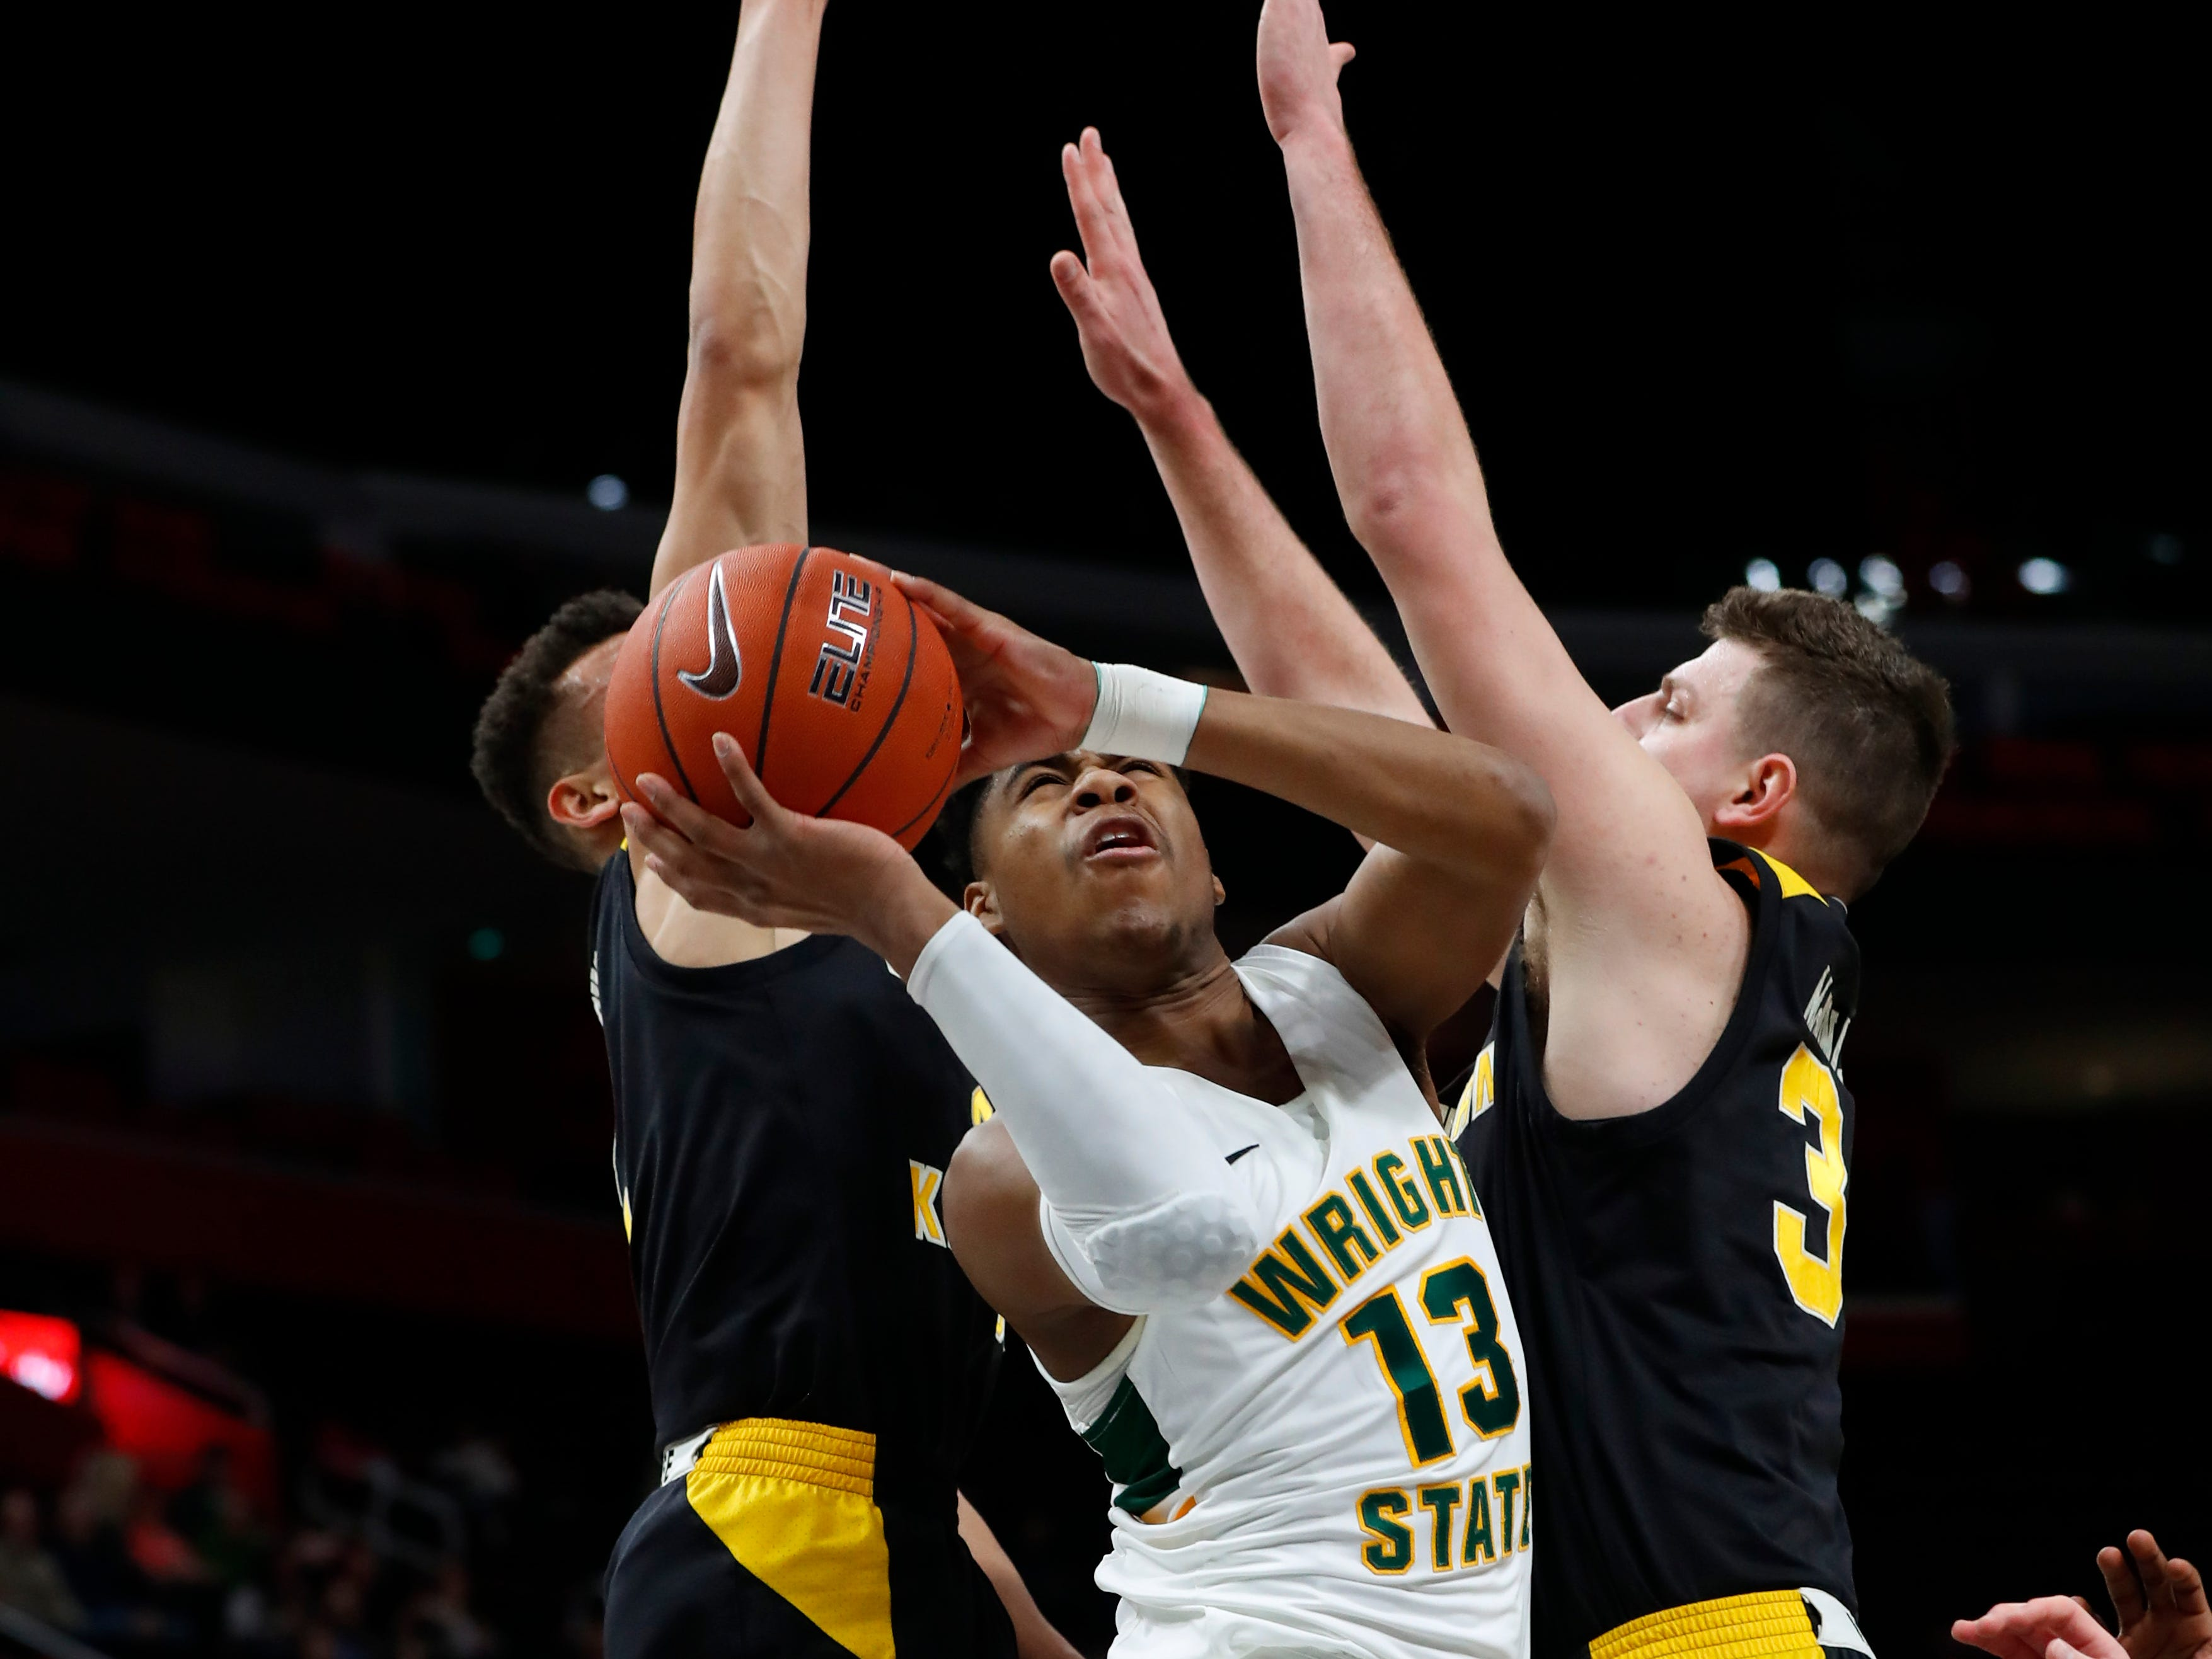 Wright State guard Malachi Smith (13) drives between Northern Kentucky guard Paul Djoko and forward Drew McDonald (34) during the first half.